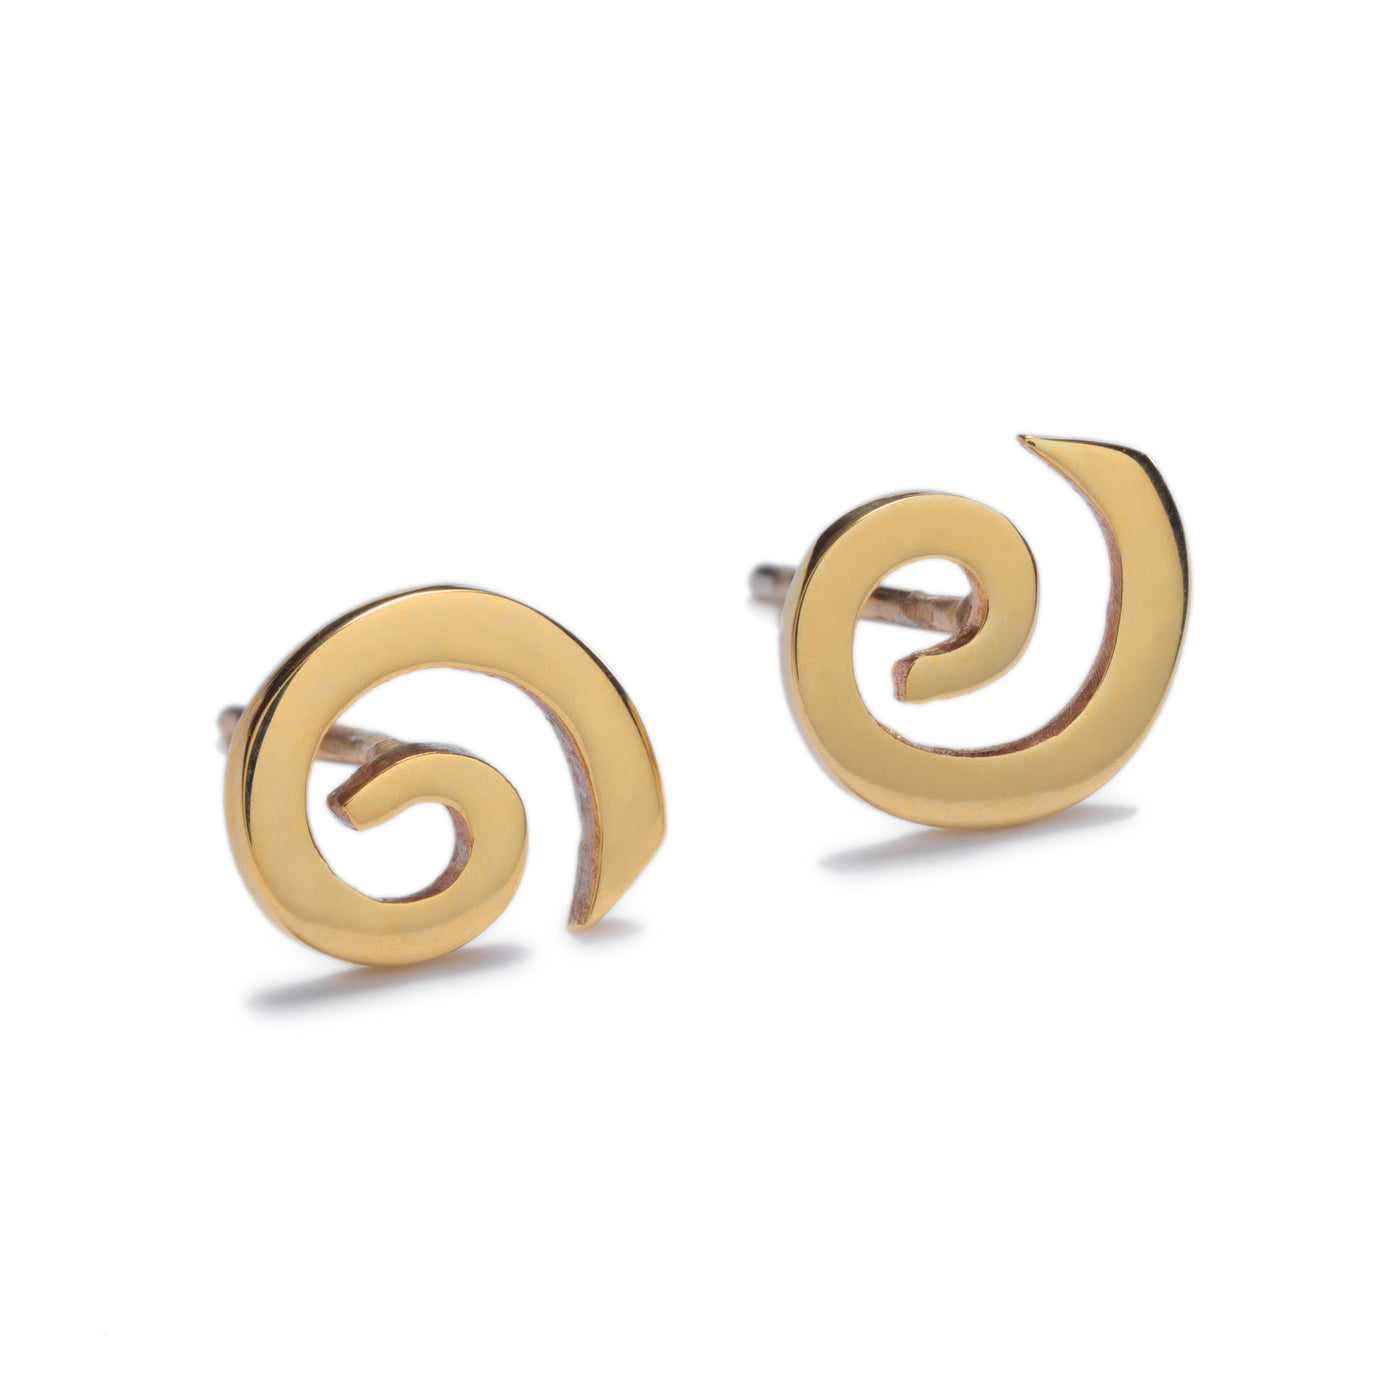 Solstice Gold Stud Earrings